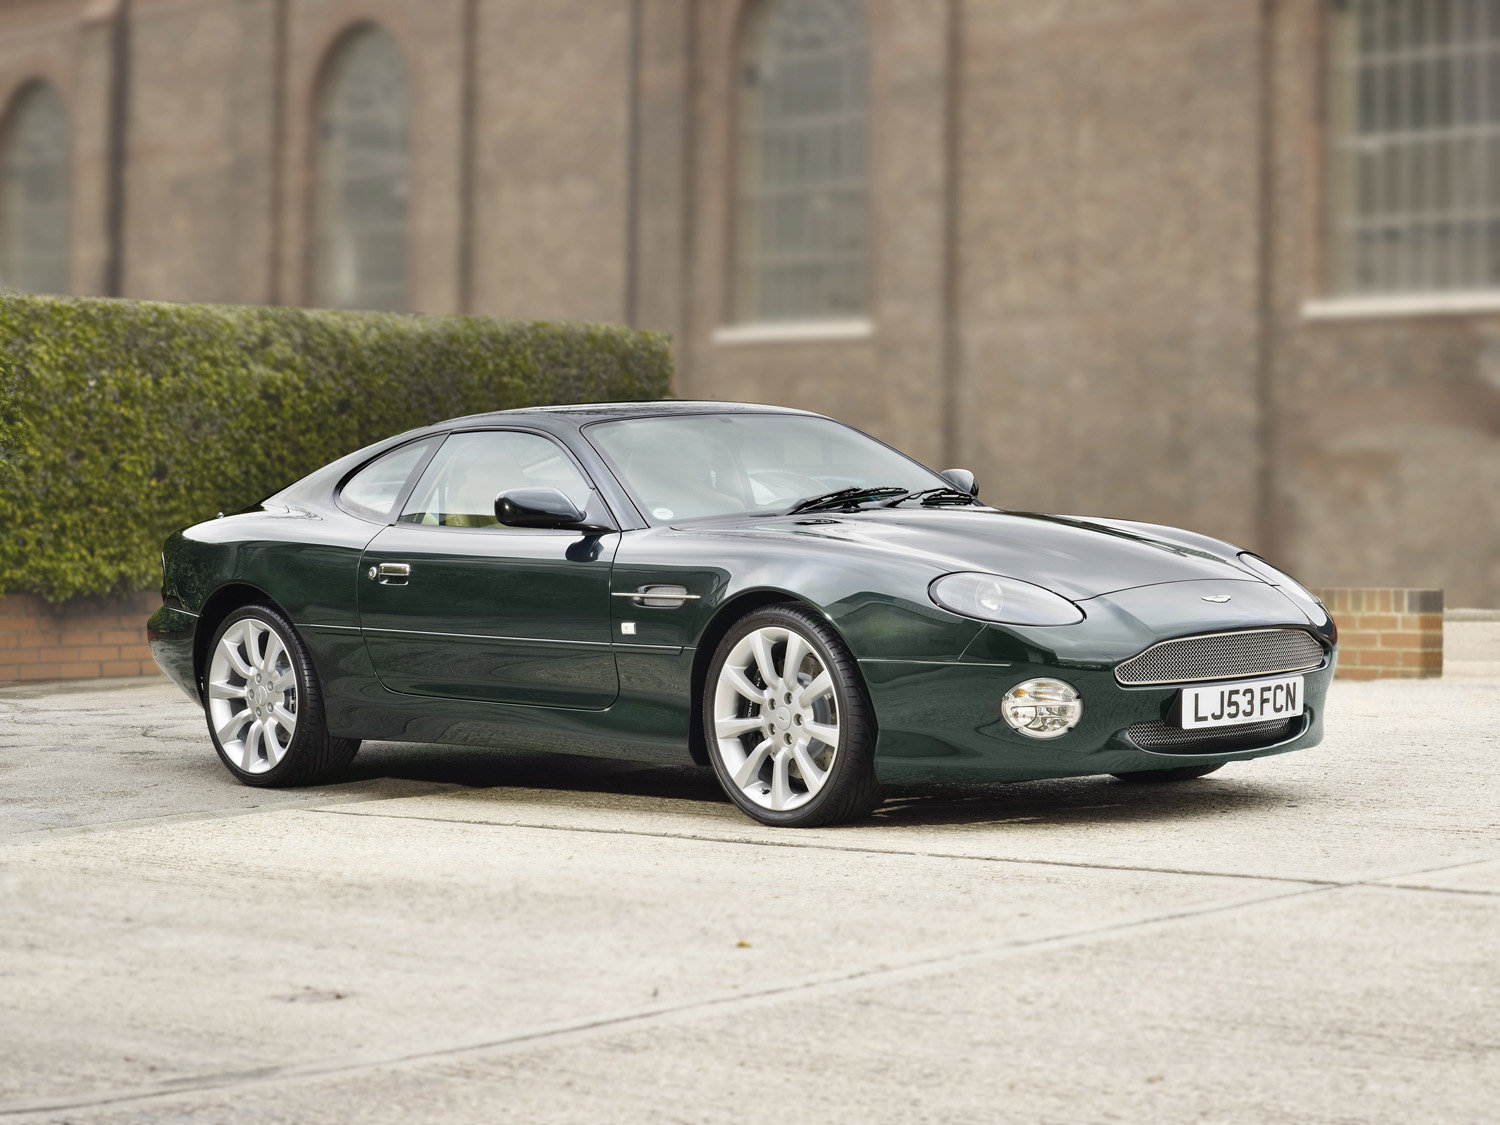 2004 DB7 Vantage.  (200 Miles Only / As New)  For Sale (picture 1 of 5)